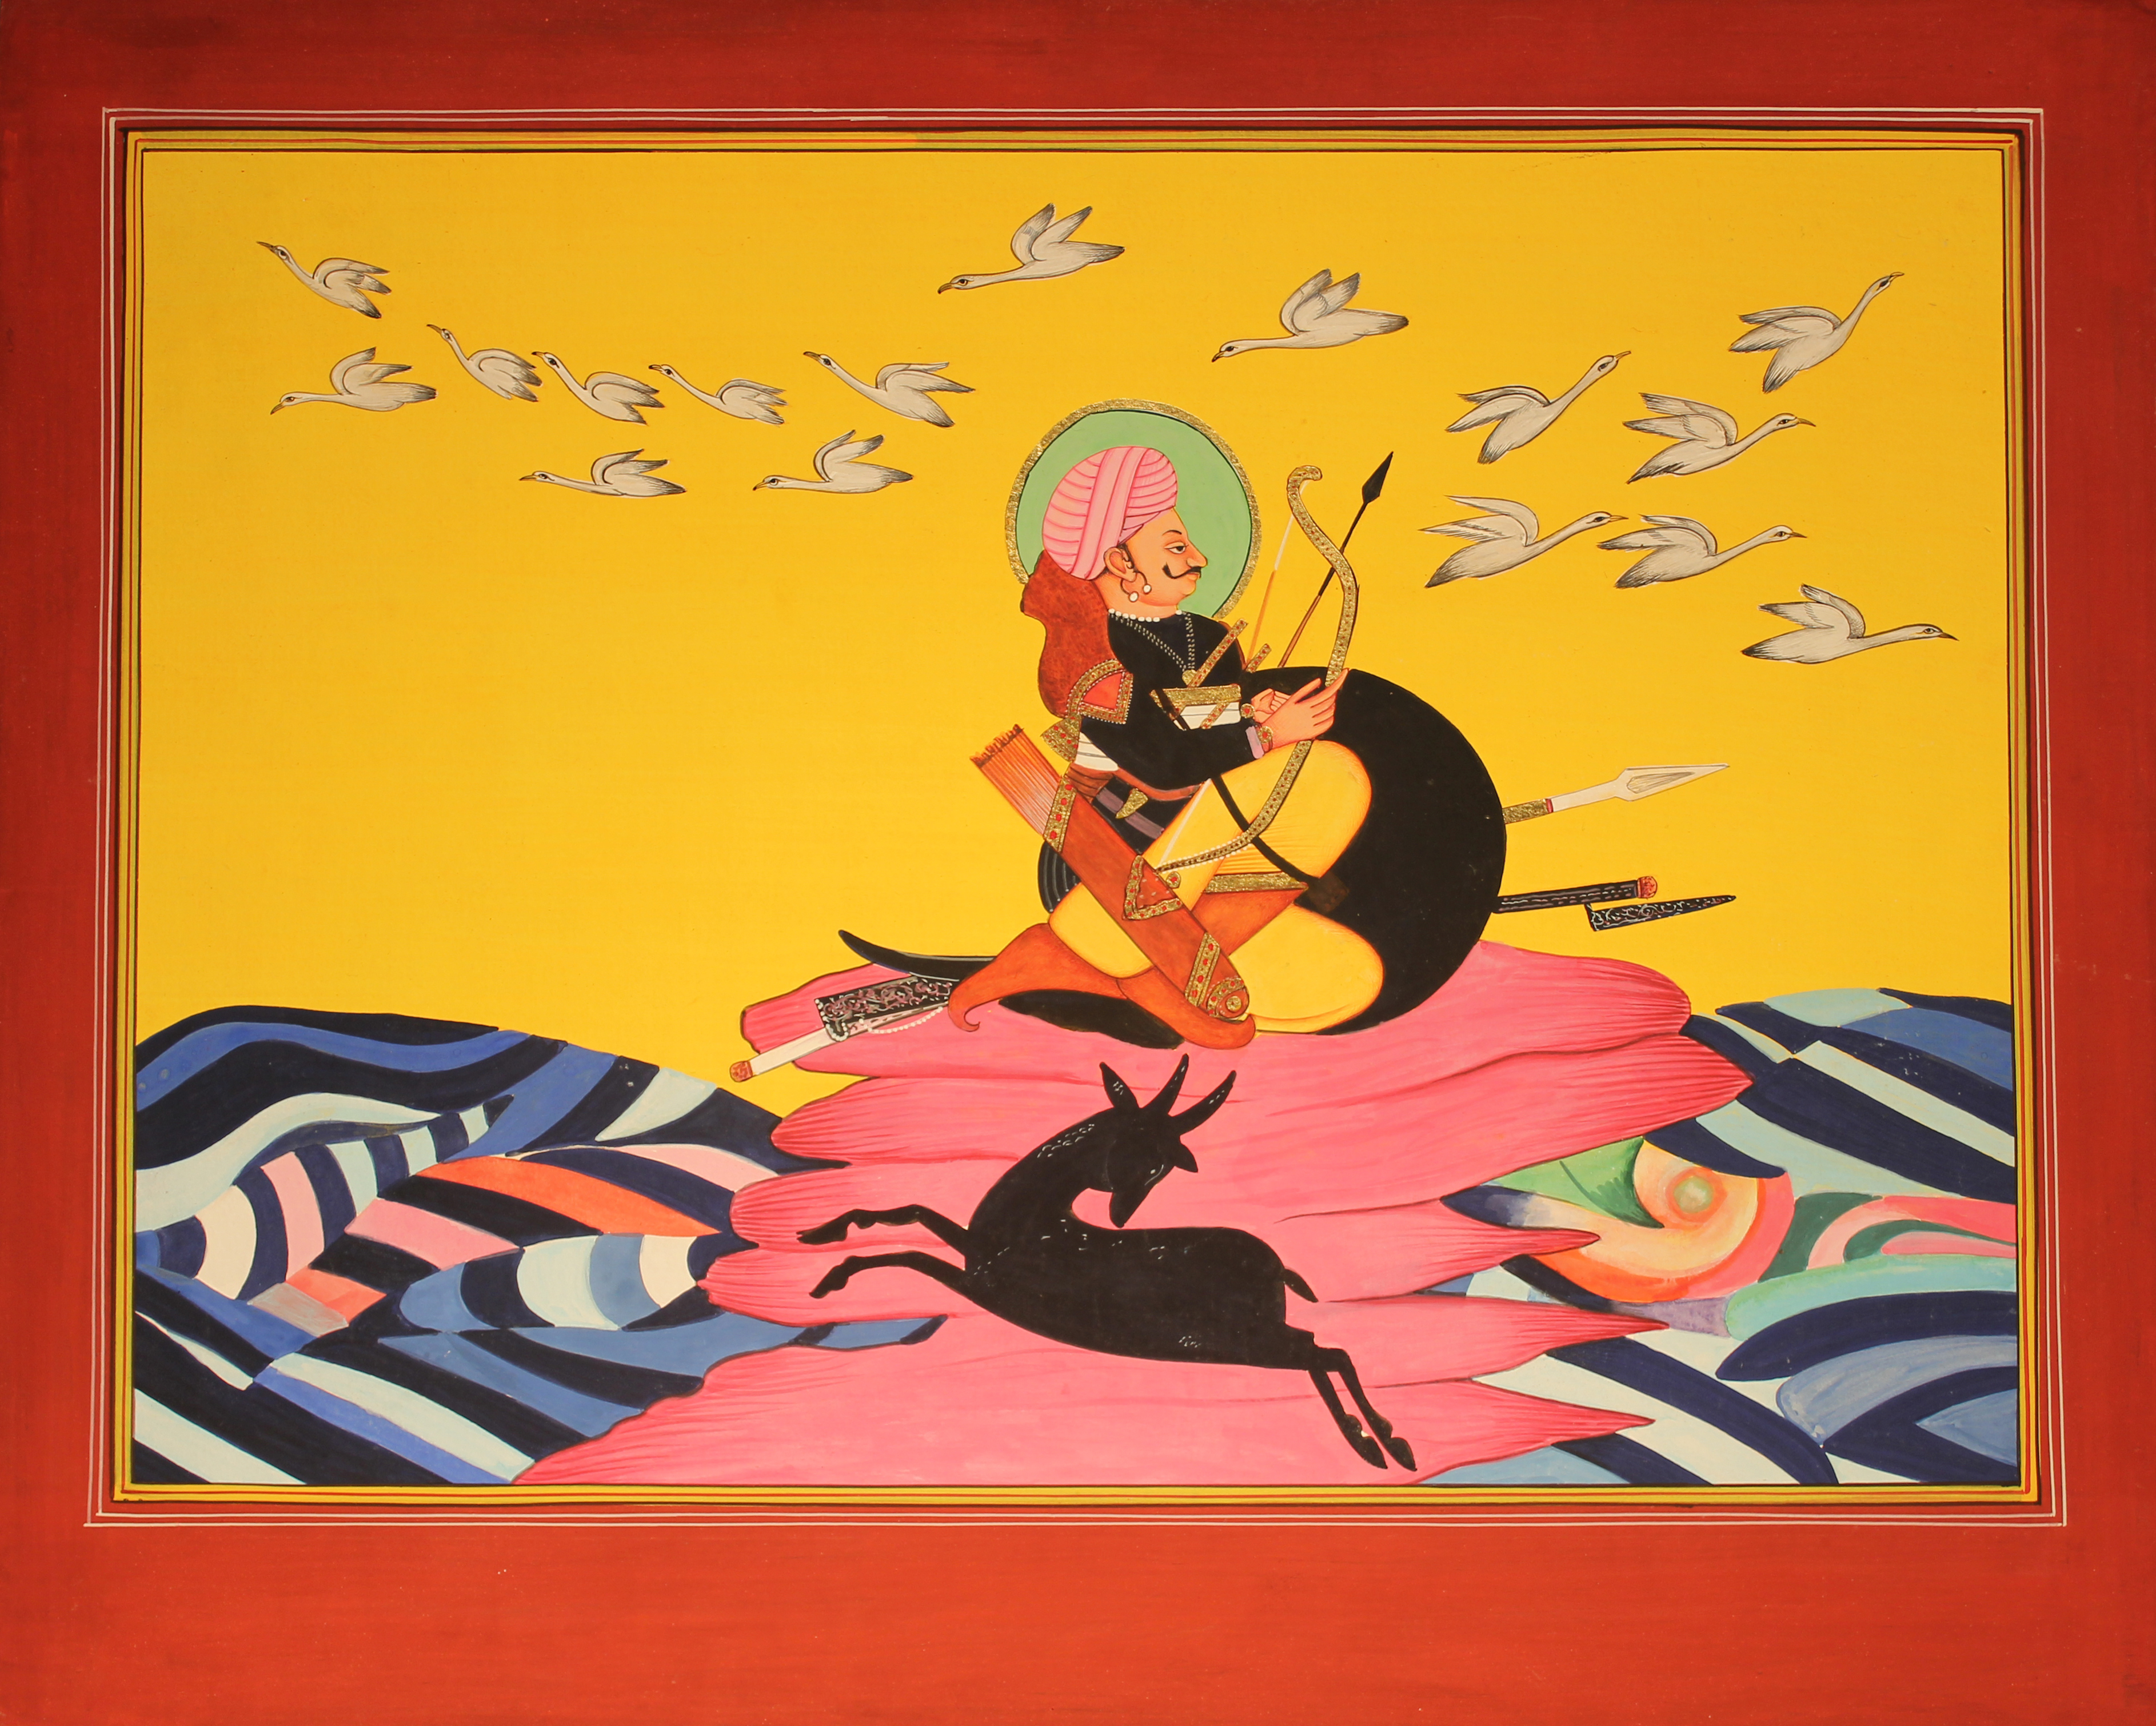 Jawun Dream Painting is a hand-painted Indian miniature used in Rhett Grumbkow's documentary, Speaking Stones & Singing Stones. Grumbkow's film tells the story of Professor Jayasinhji Jhala's ancestral homeland.